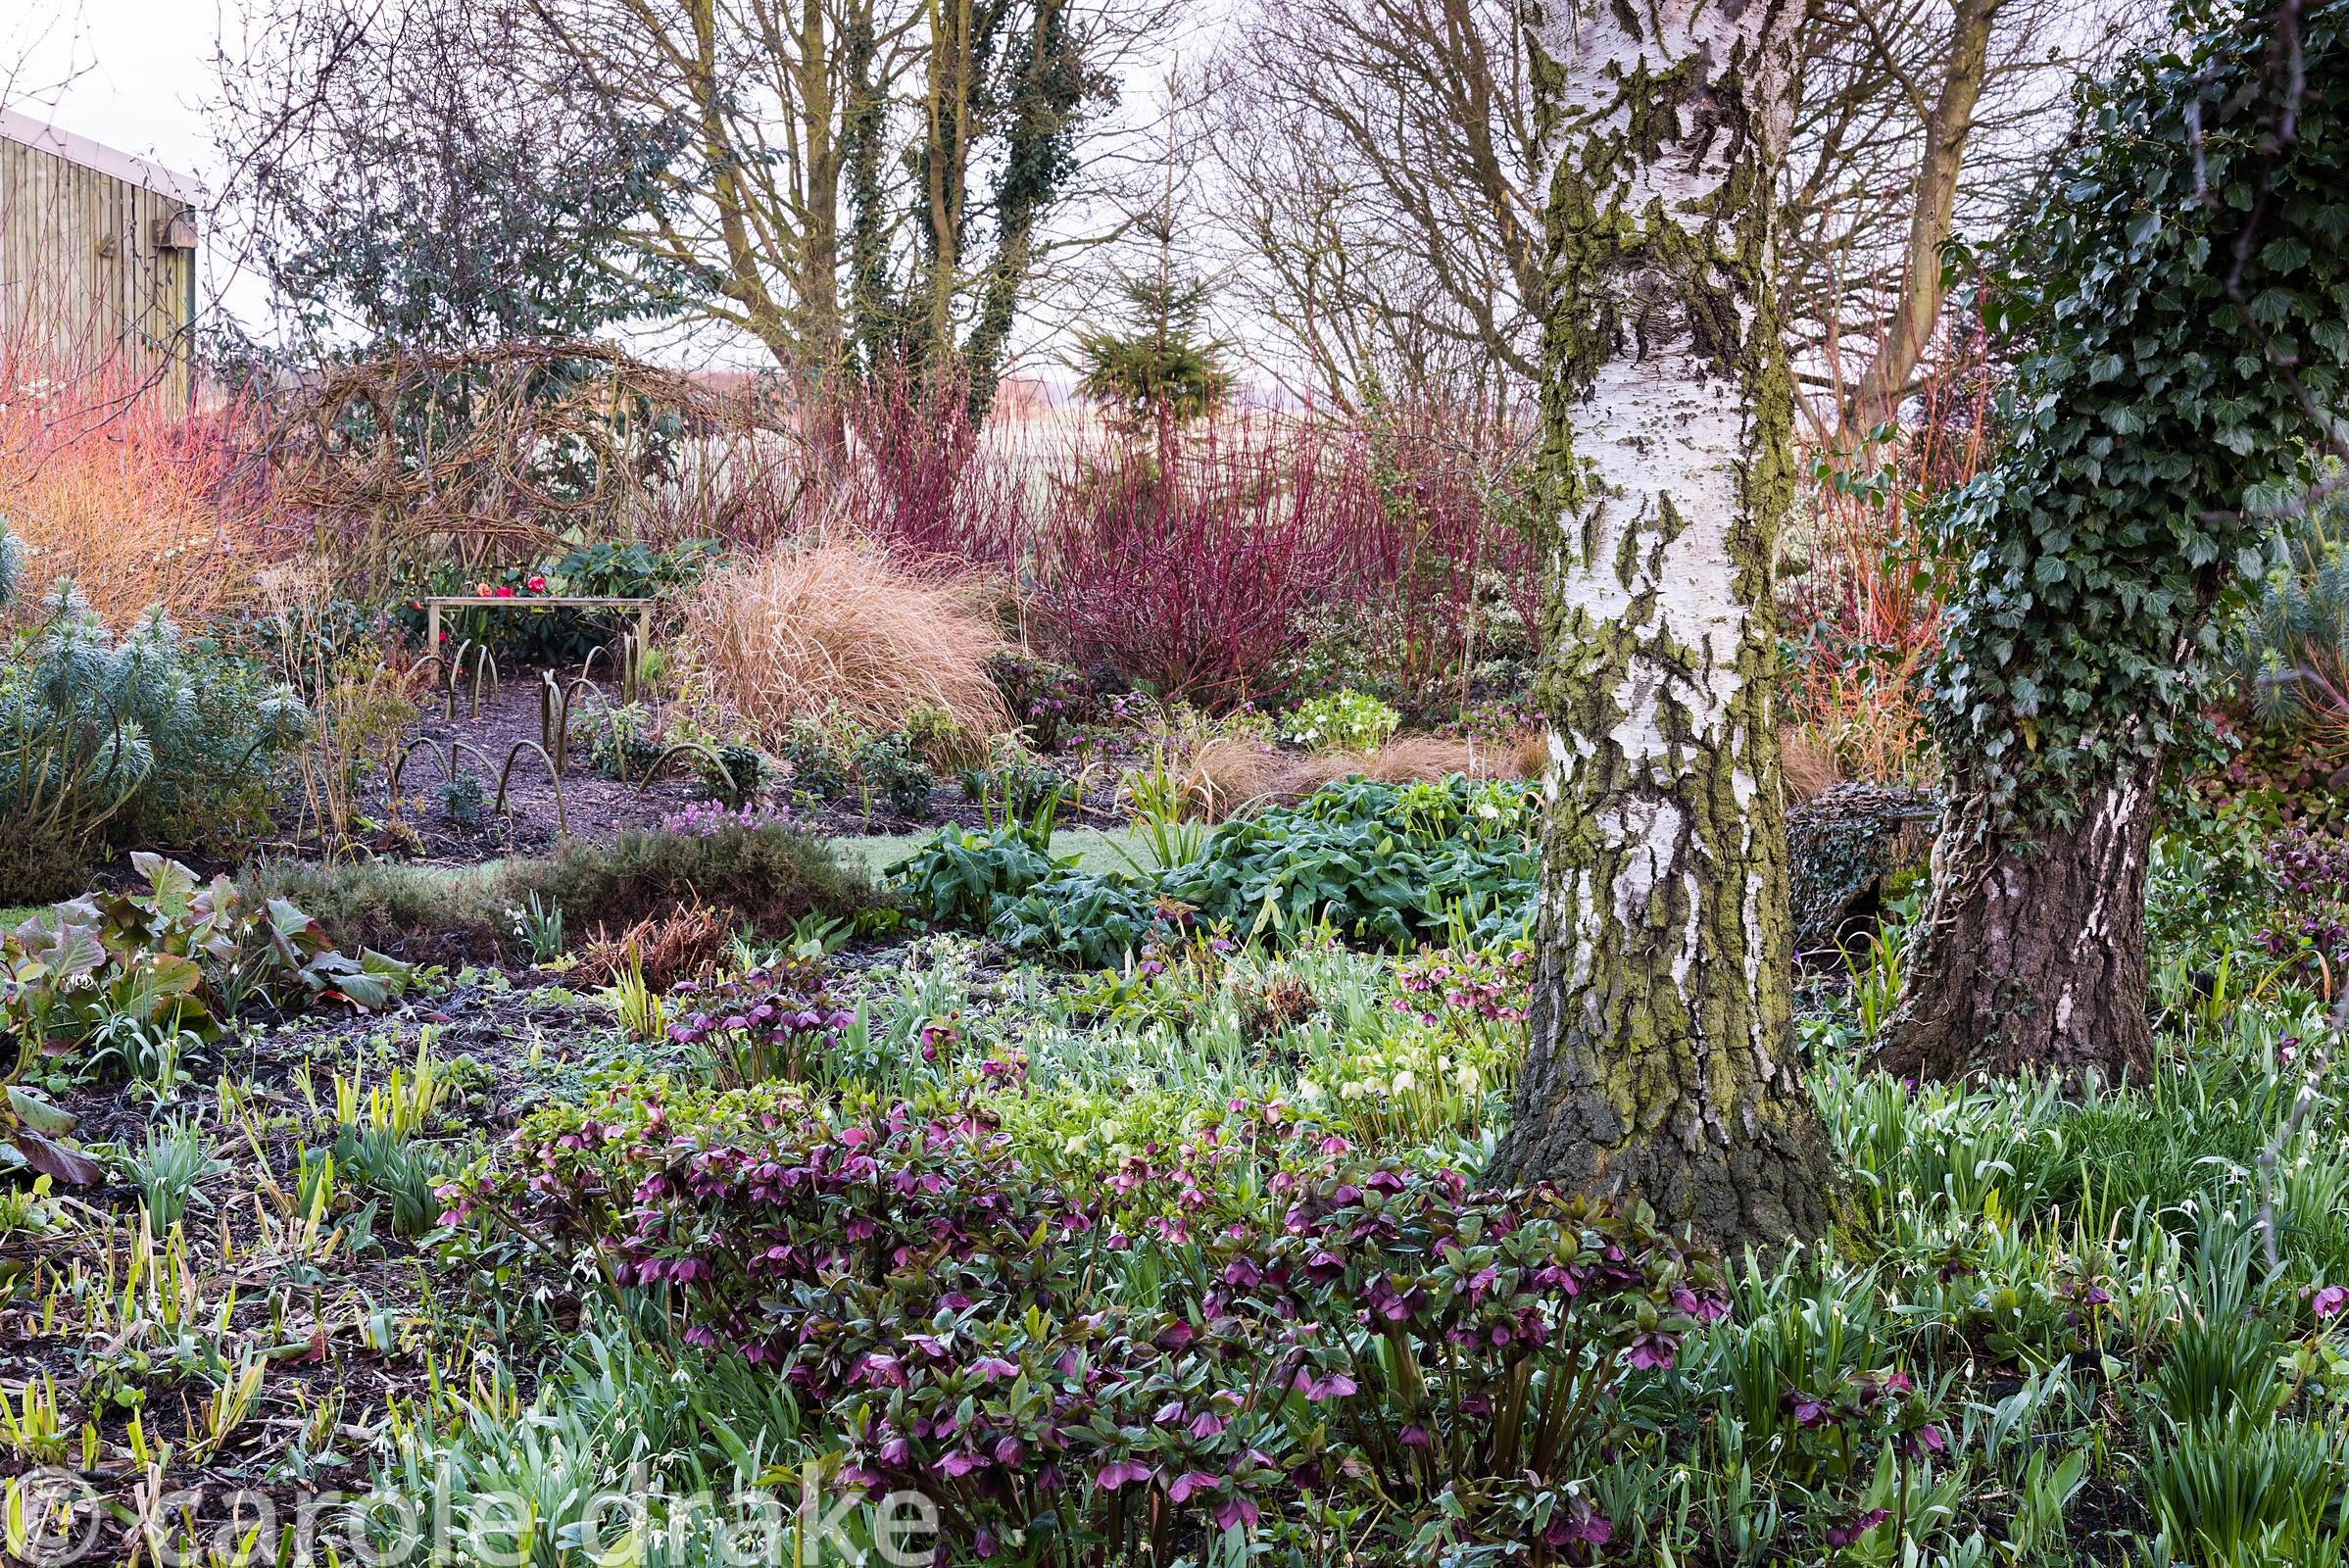 Winter garden with bed full of Helleborus orientalis hybrids and snowdrops with border behind planted with Cornus alba 'Sibir...